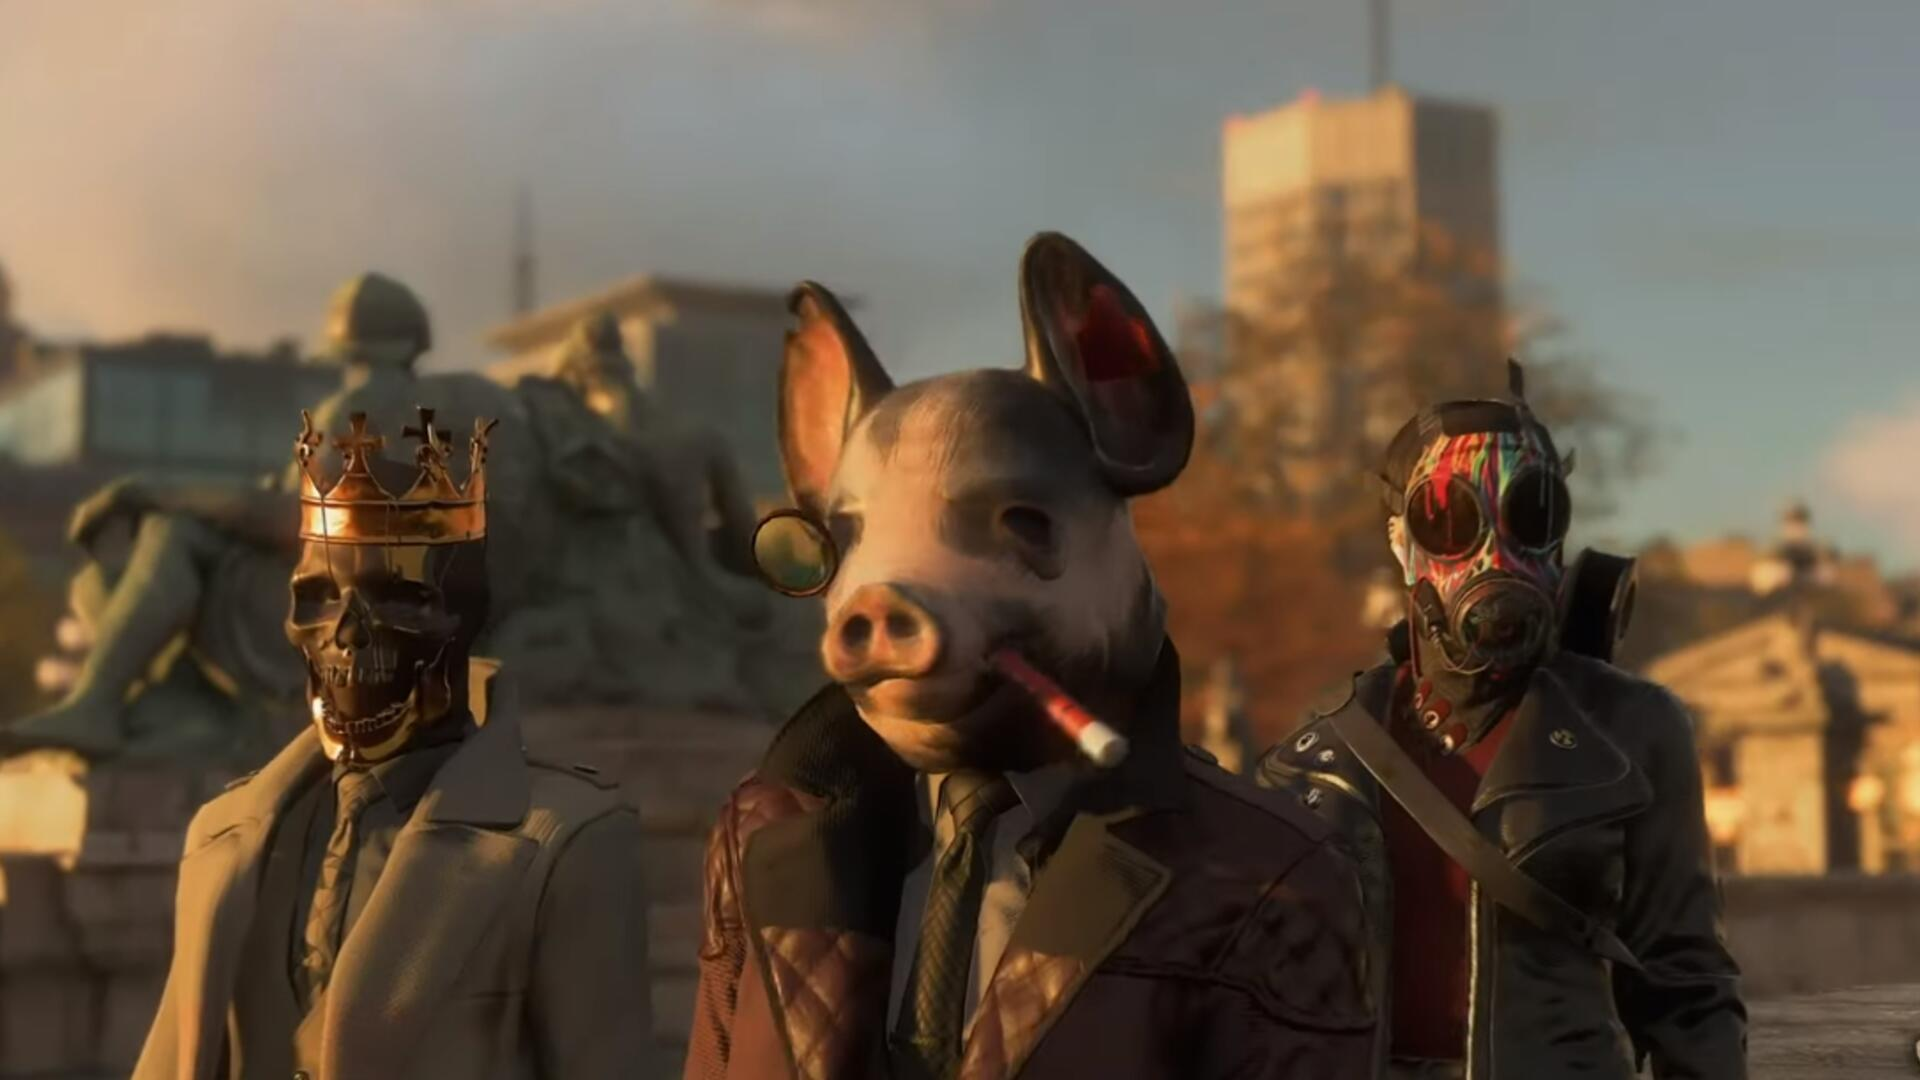 Watch Dogs Legion Gameplay Reveal Has a Lot of Playable Characters and Many Different London Accents, Releasing March 2020